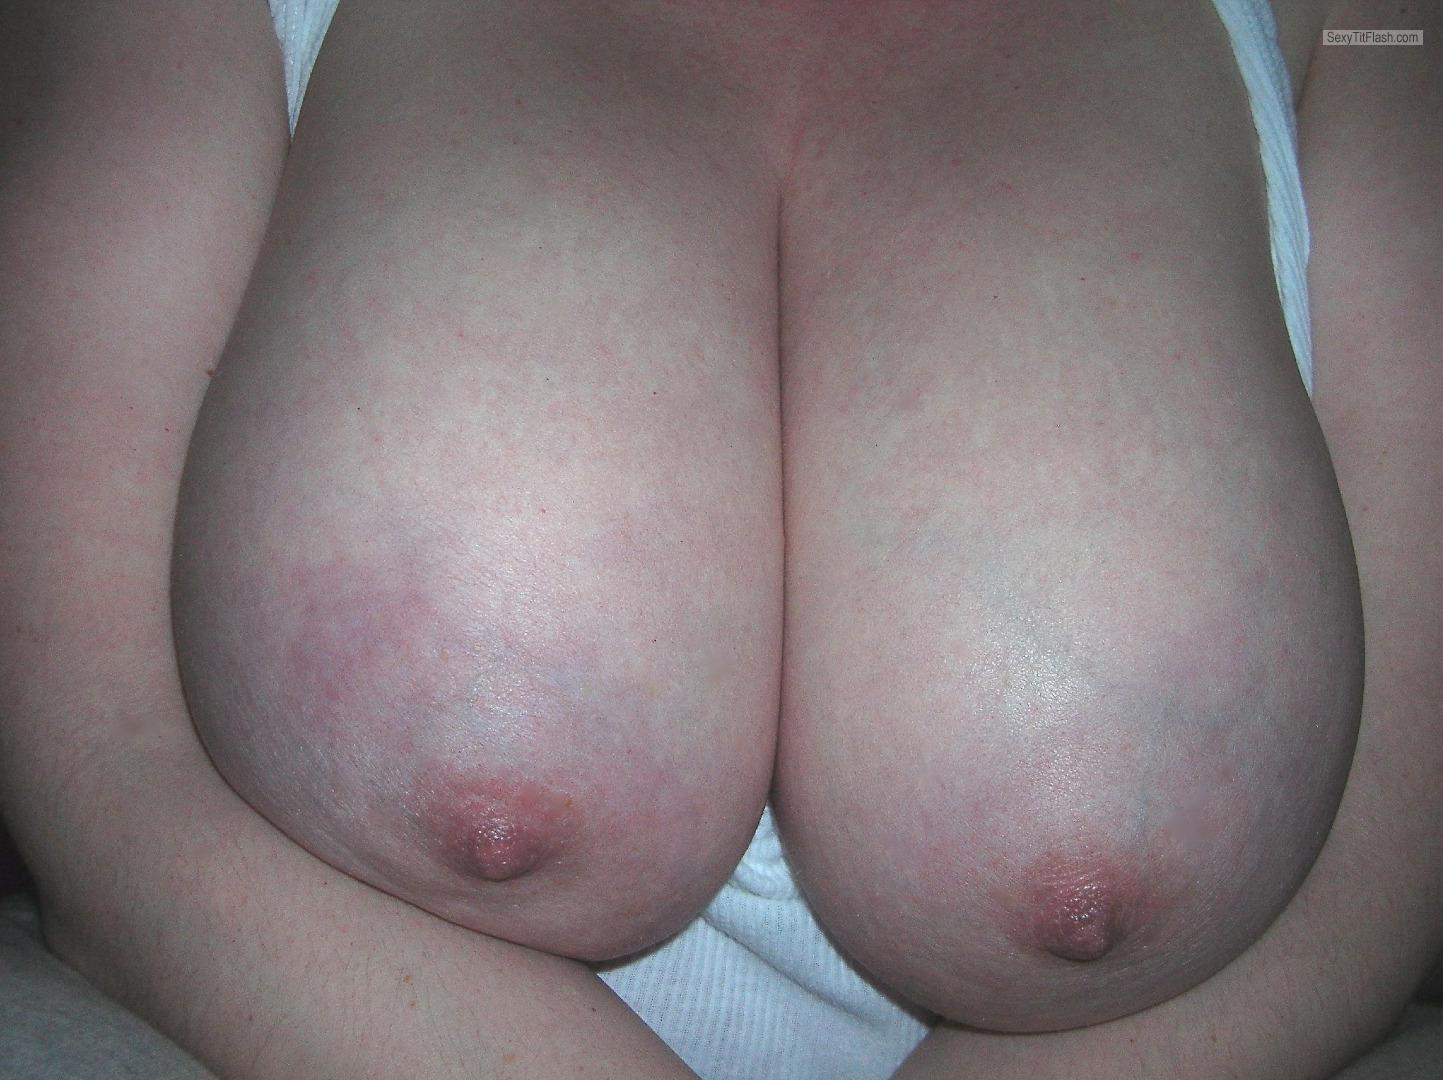 Tit Flash: Wife's Very Big Tits - Topless Melke from Luxembourg